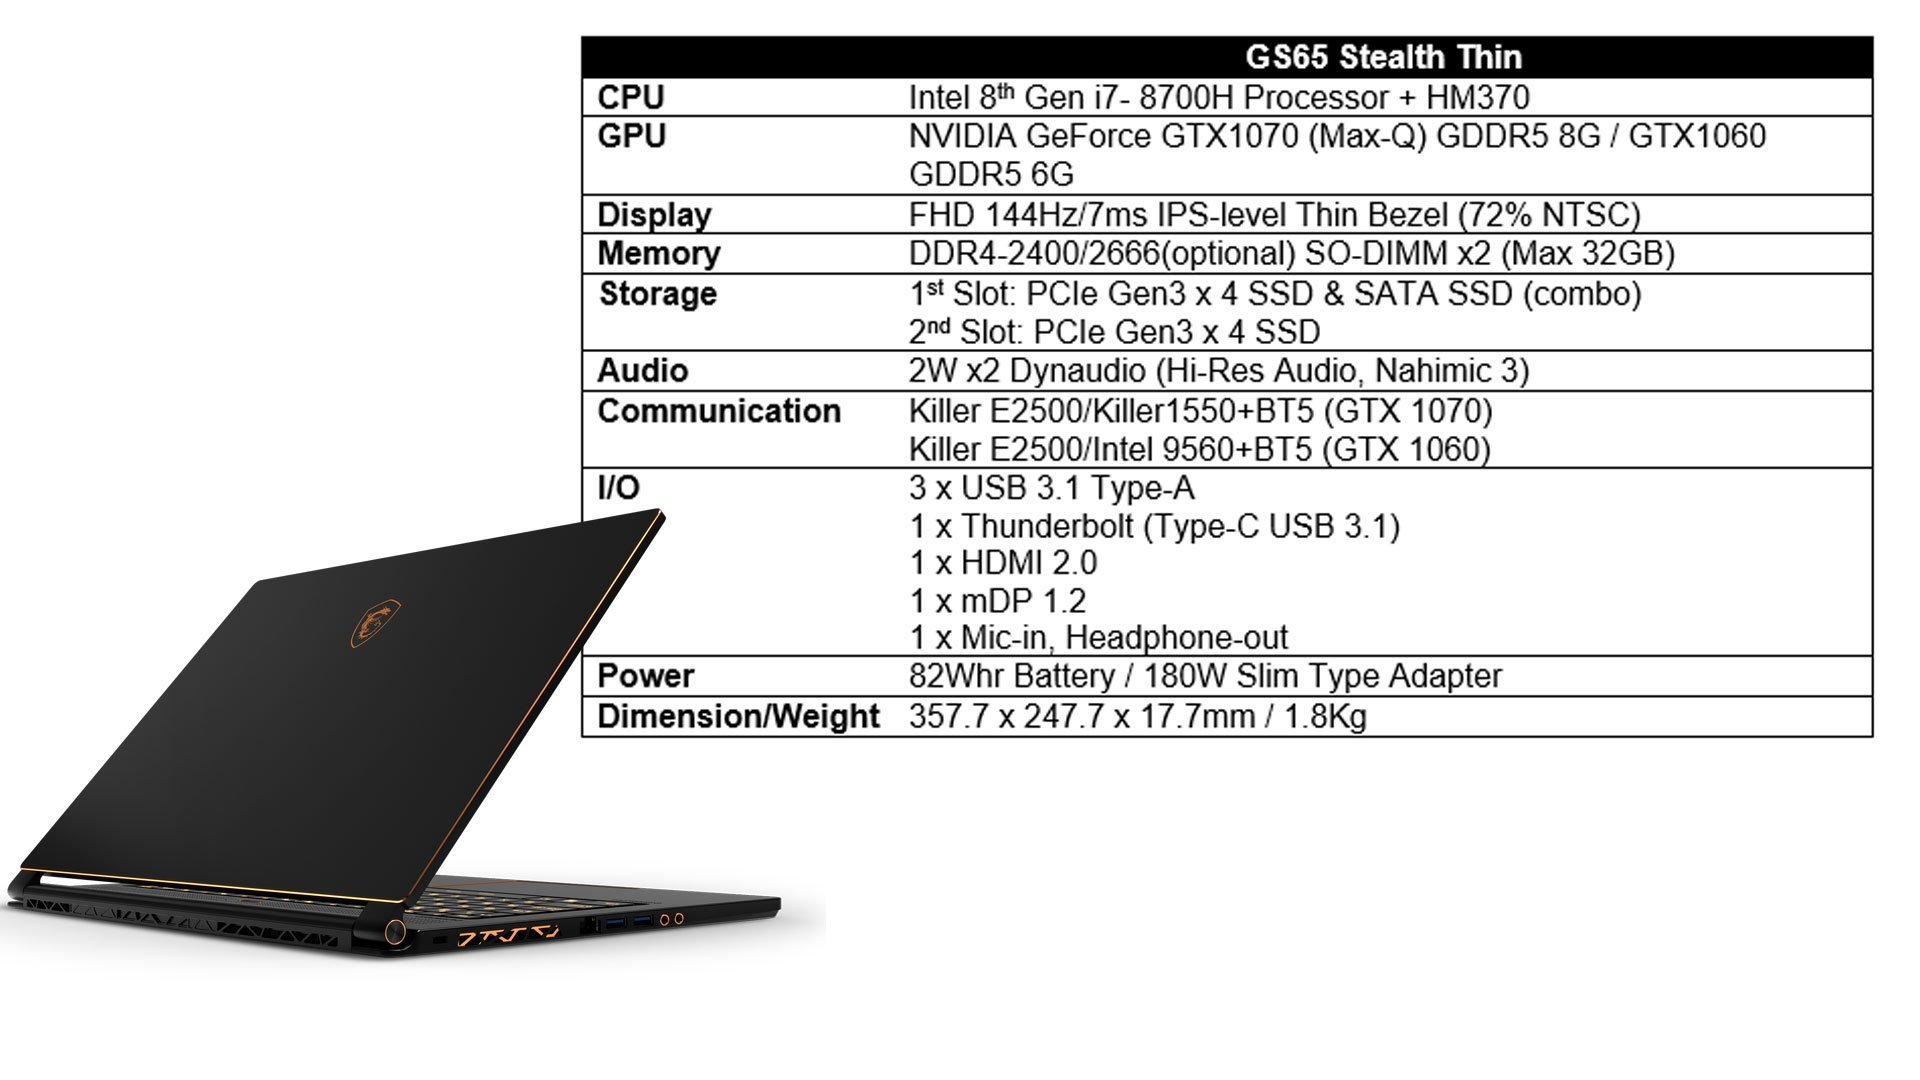 New Gaming Laptops from MSI with Intel 8th Generation Processors 21